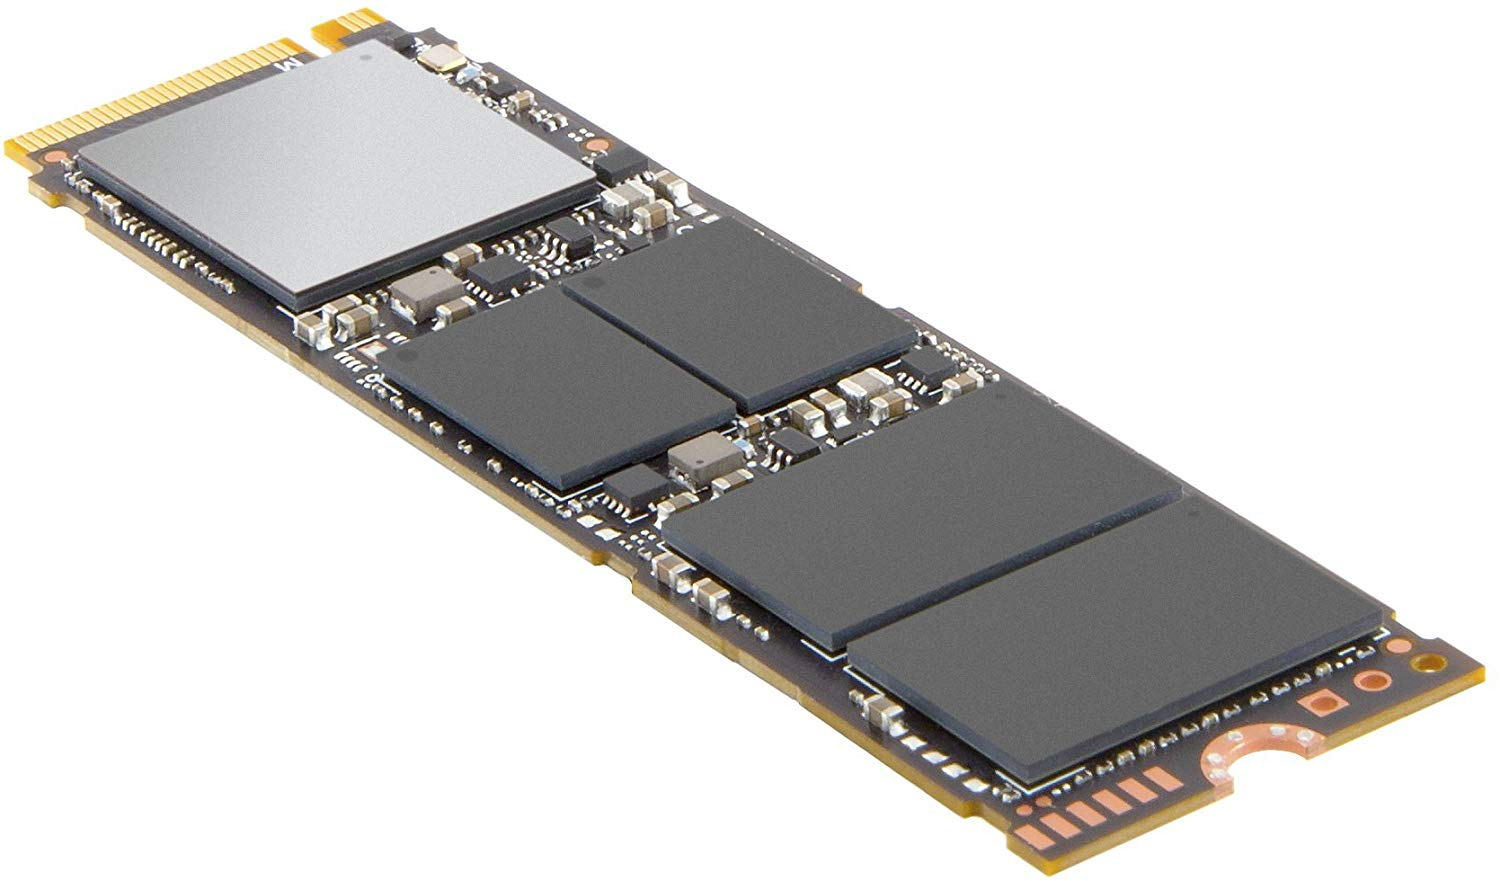 Intel SSD PRO 7600p series data recovery